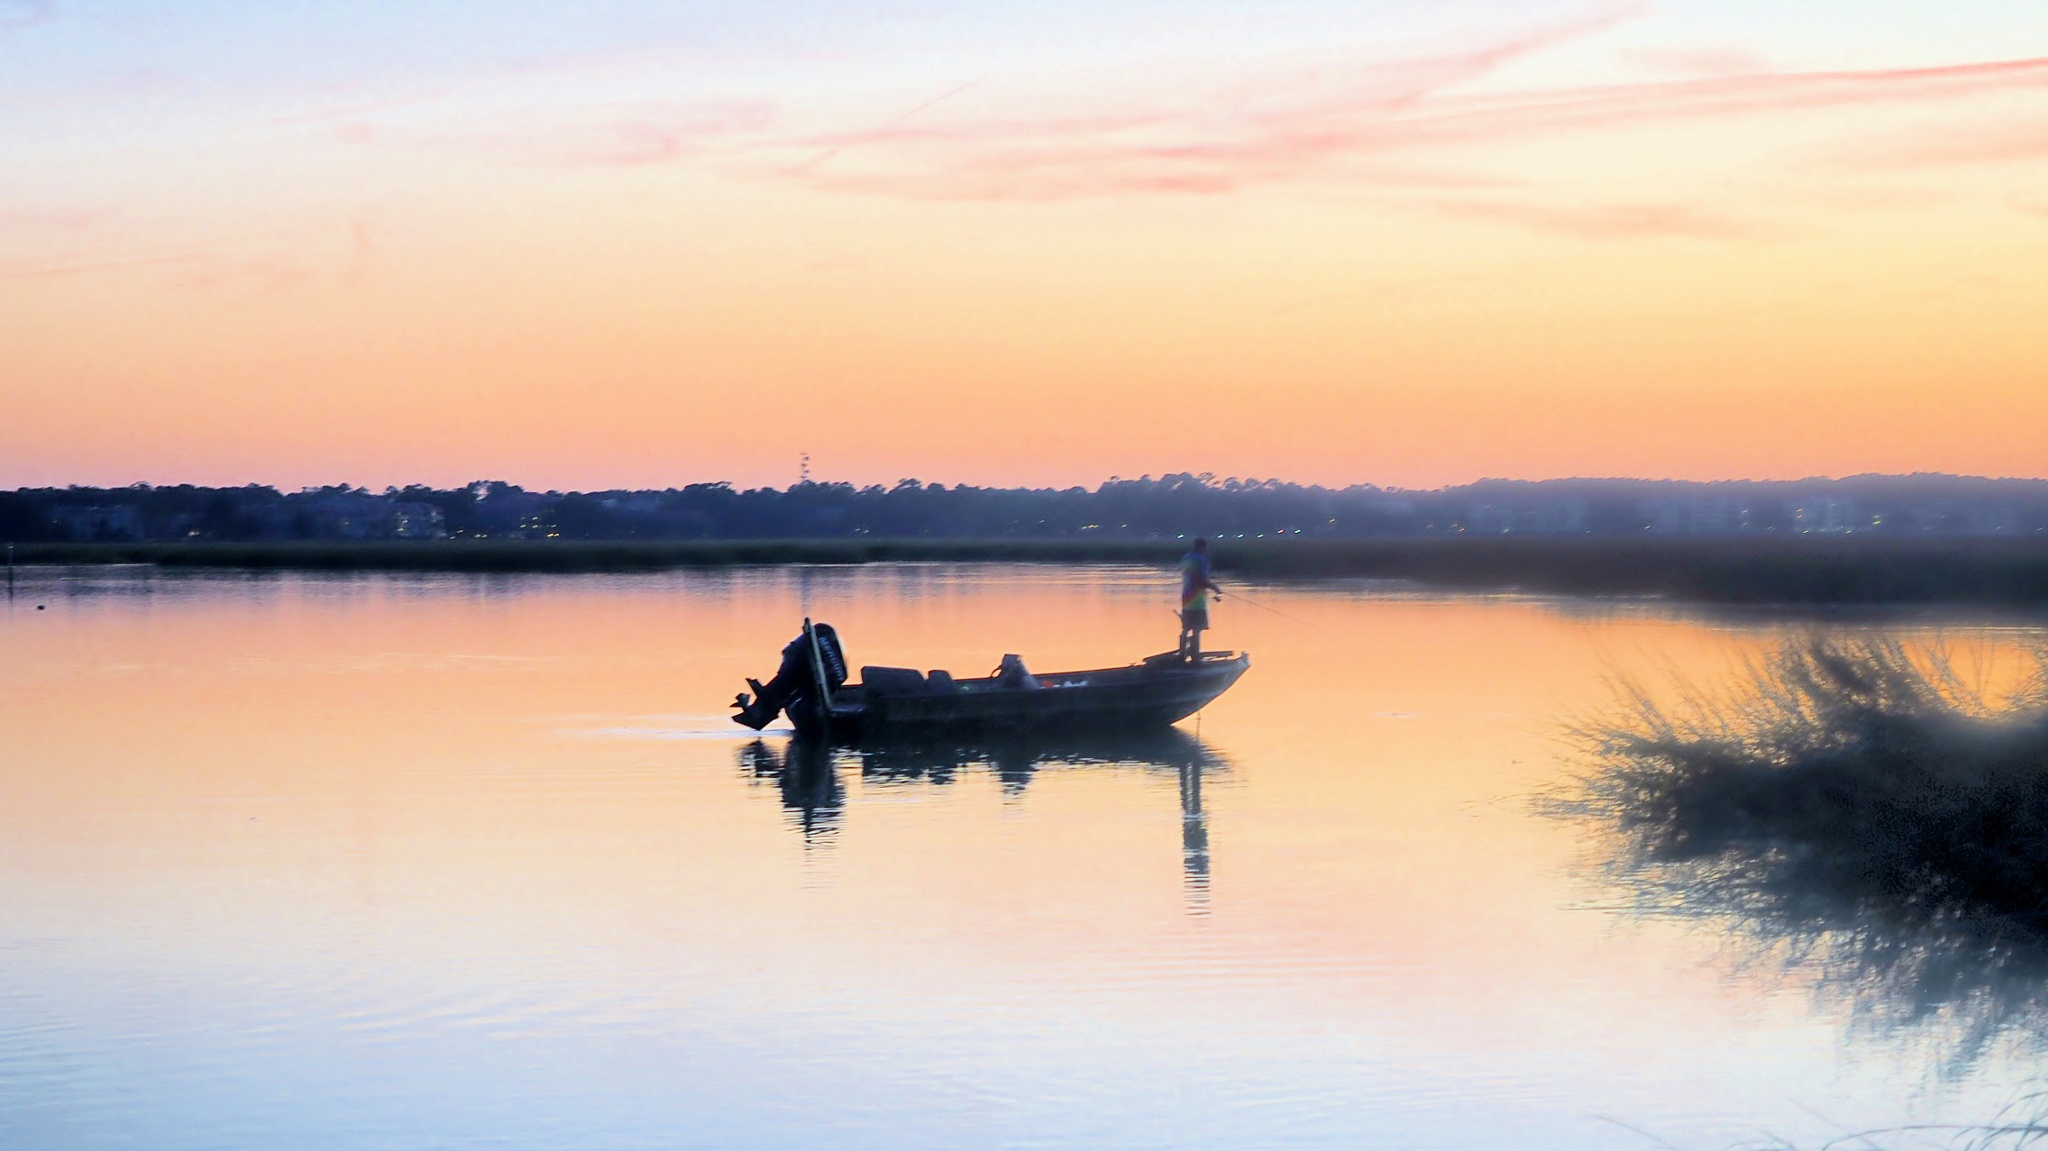 Fishing at Sunset by william.l.bosley